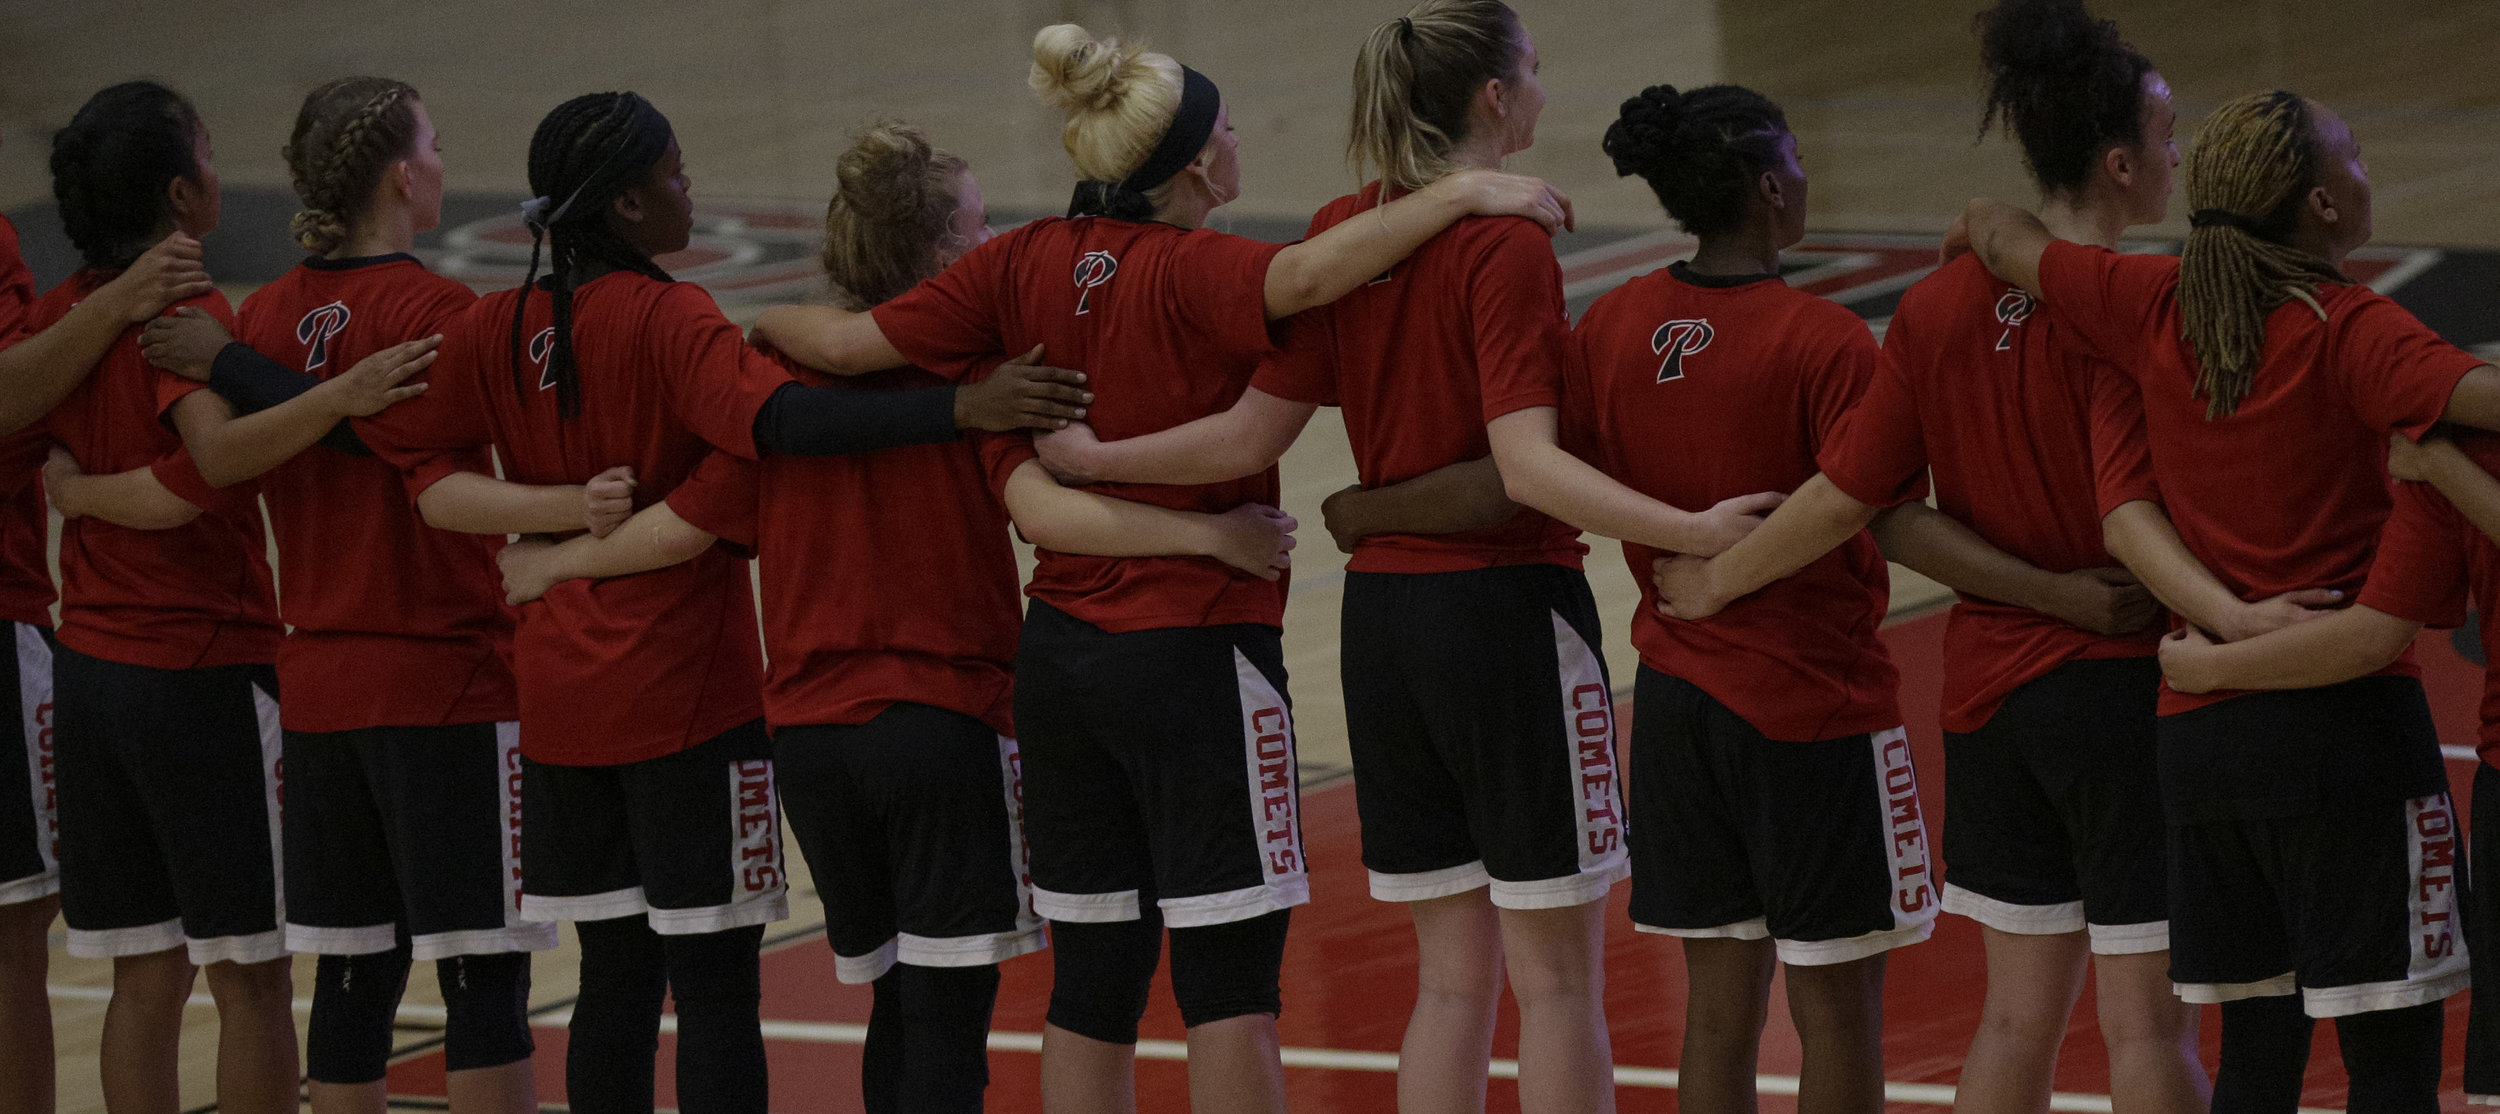 The Palomar Comets womens basketball team in arms around eachother during the national anthem before facing off against The Santa Ana College Dons . The Dons would fall to the Comets 76-61.   Photo taken October 3rd 2016 at Santa Ana College in Santa Ana Calif..         Photo By: Daniel Bowyer/Sports Shooter Academy